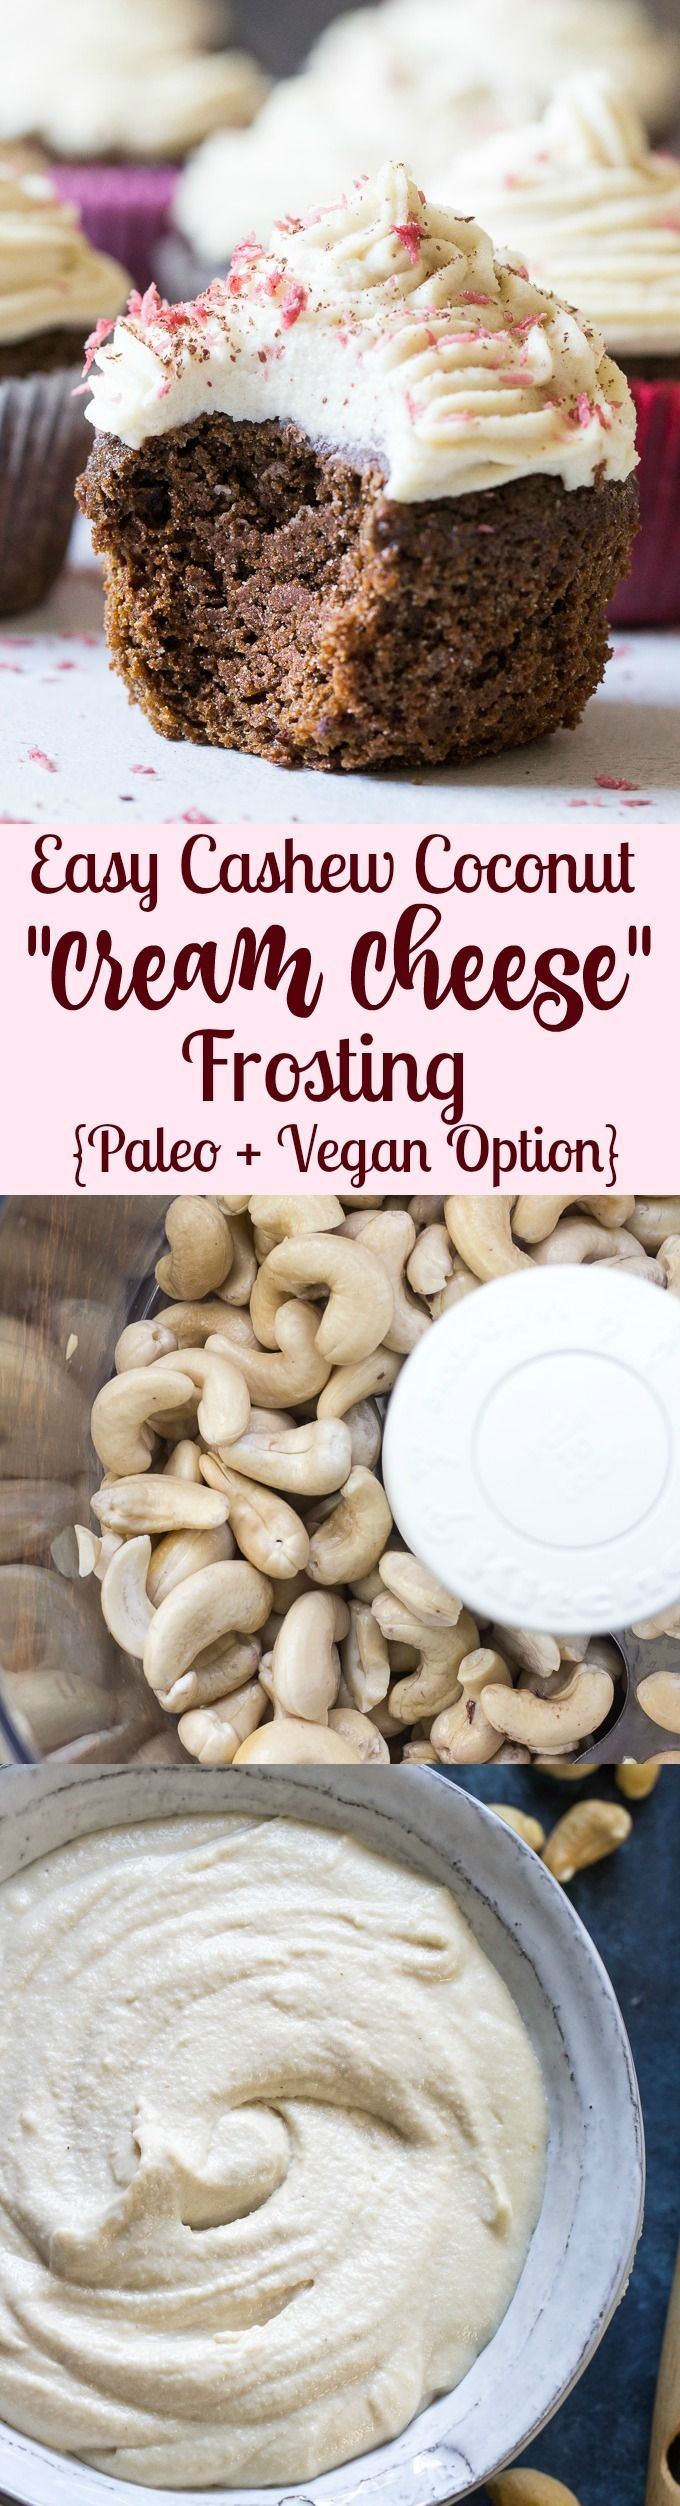 Coconut cashew cream cheese frosting that comes together in minutes in a food processor or blender. This is the perfect thick, creamy and healthy frosting for cakes and cupcakes, cookies and brownies!  Paleo with vegan option (use maple syrup)